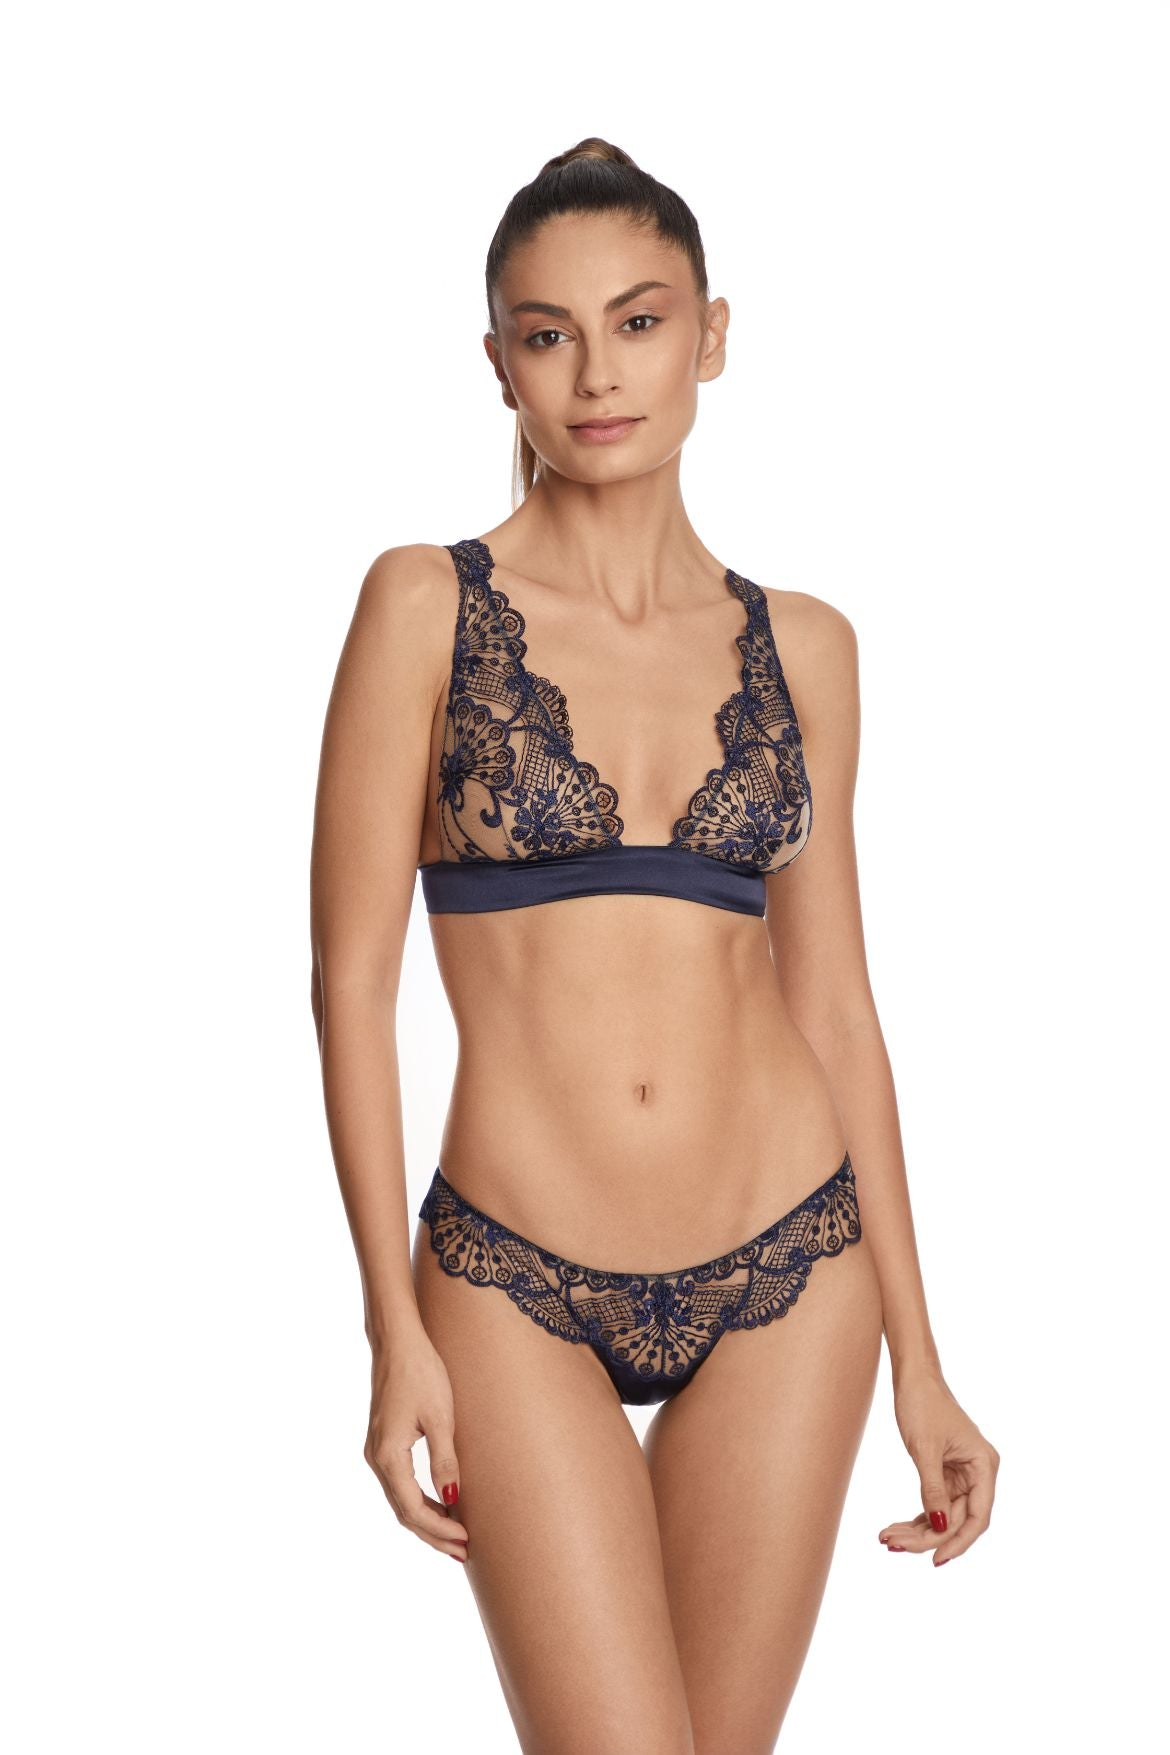 Moonlight Triangle Bra in Midnight Blue